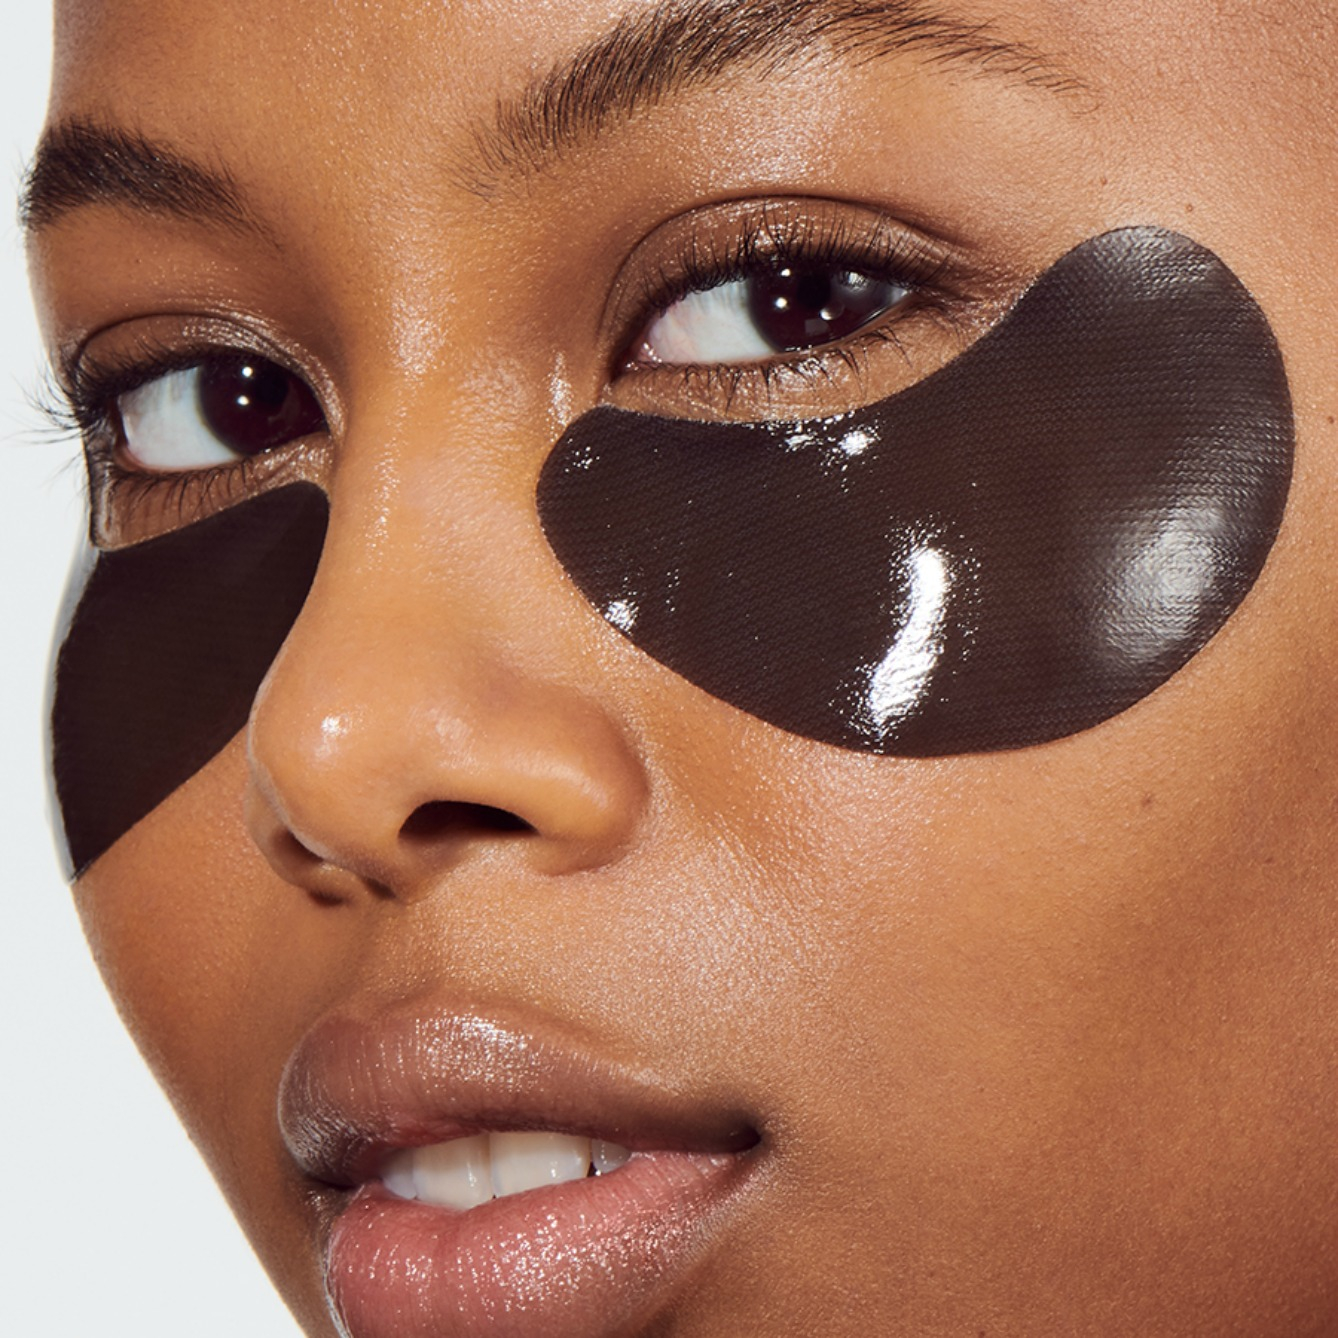 e.l.f. Launched New Eye Masks—Just In Time for All That Holiday Stress